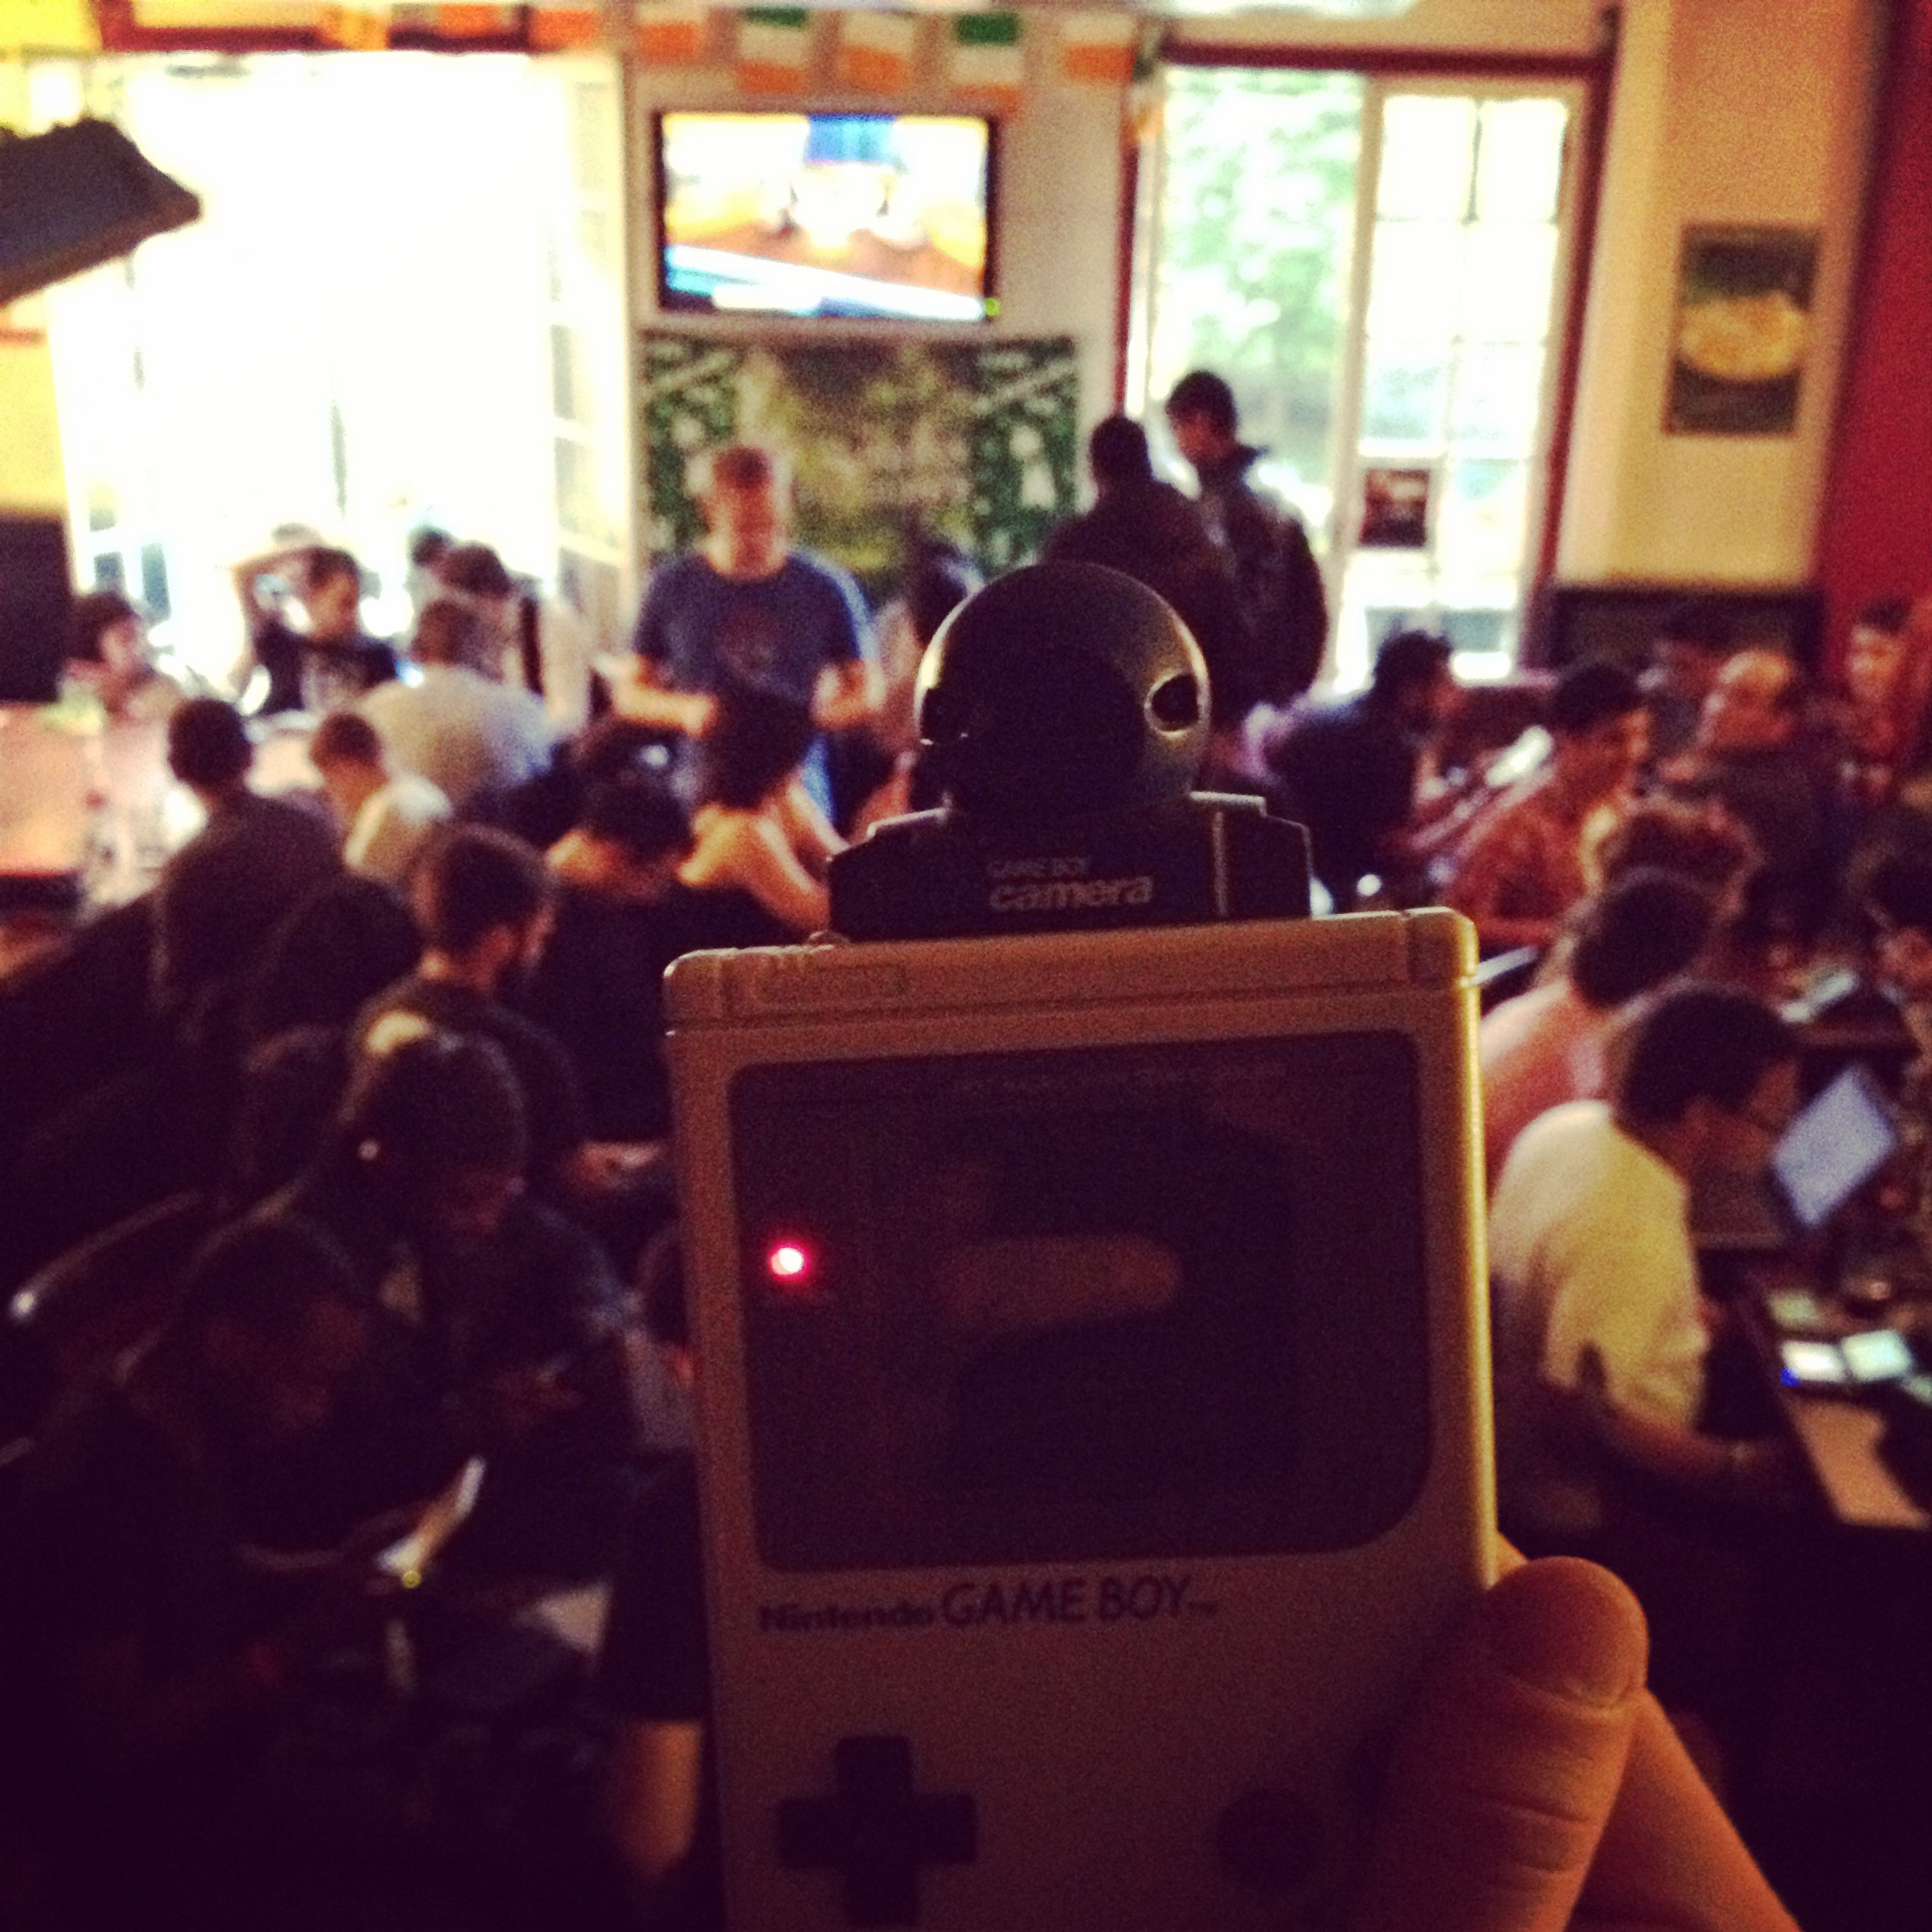 Game Boy in Paris